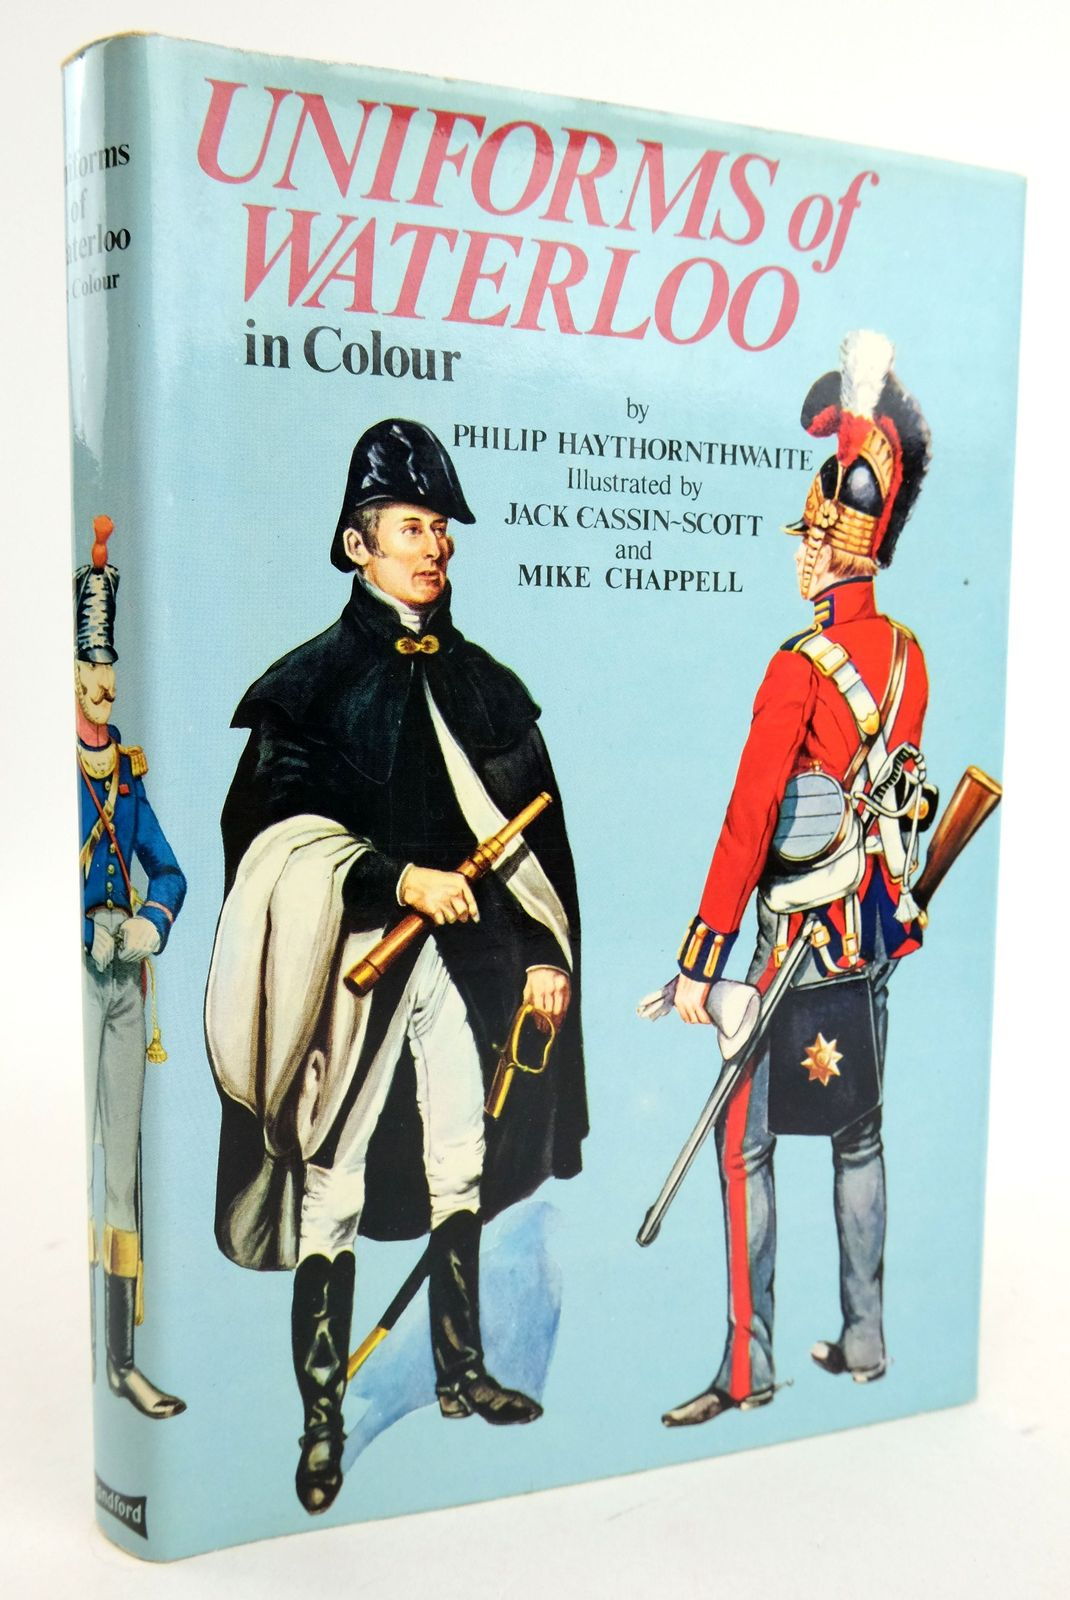 Photo of UNIFORMS OF WATERLOO IN COLOUR 16-18 JUNE 1815 written by Haythornthwaite, Philip illustrated by Cassin-Scott, Jack Chappell, Michael published by Blandford Press (STOCK CODE: 1819732)  for sale by Stella & Rose's Books